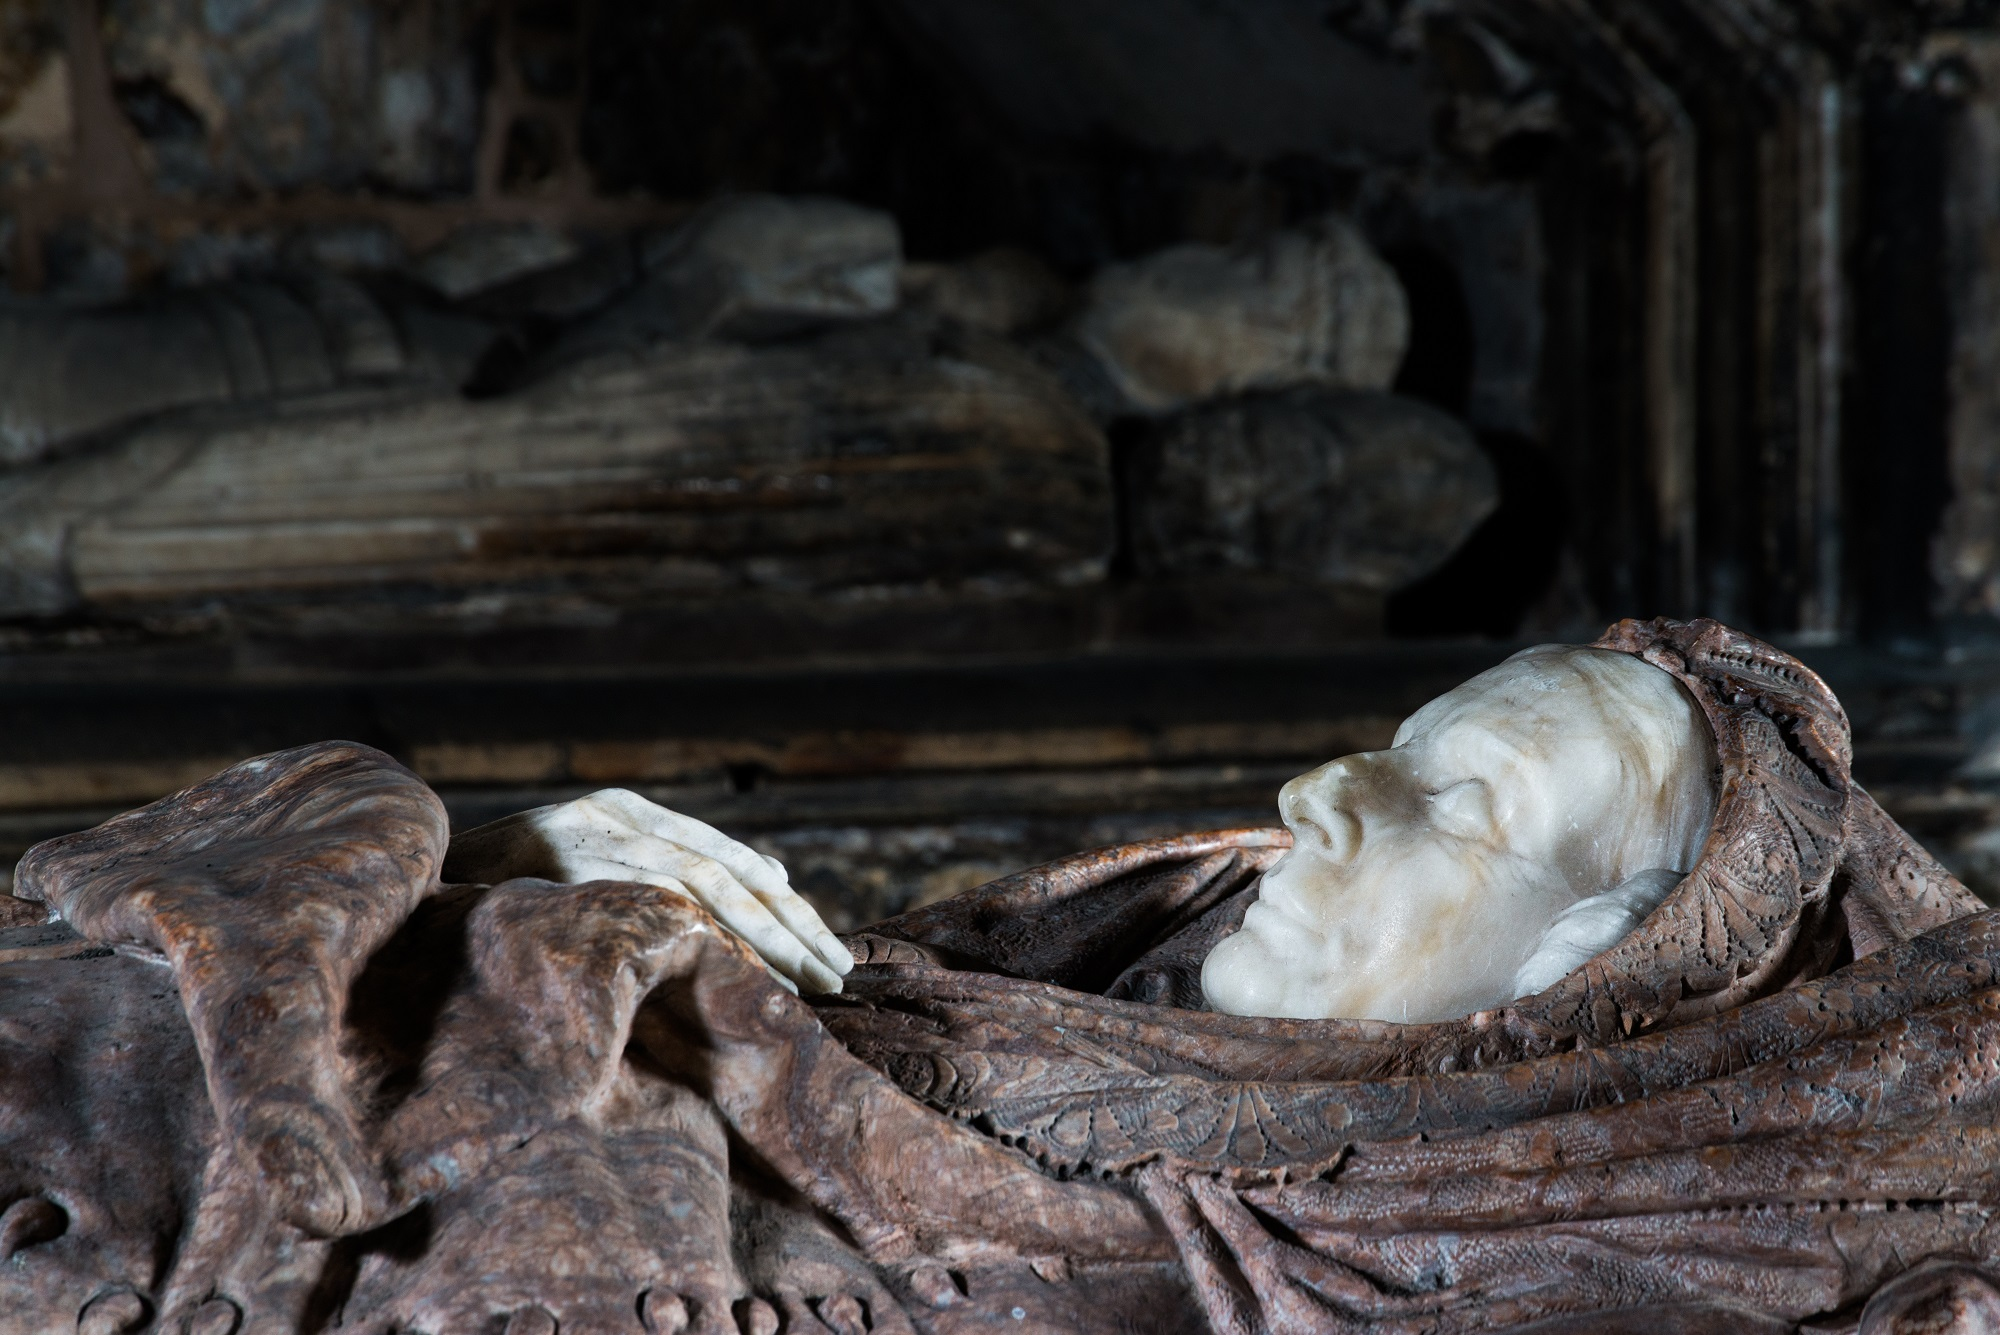 A particularly deathly looking effigy at St Bride's Church, Douglas